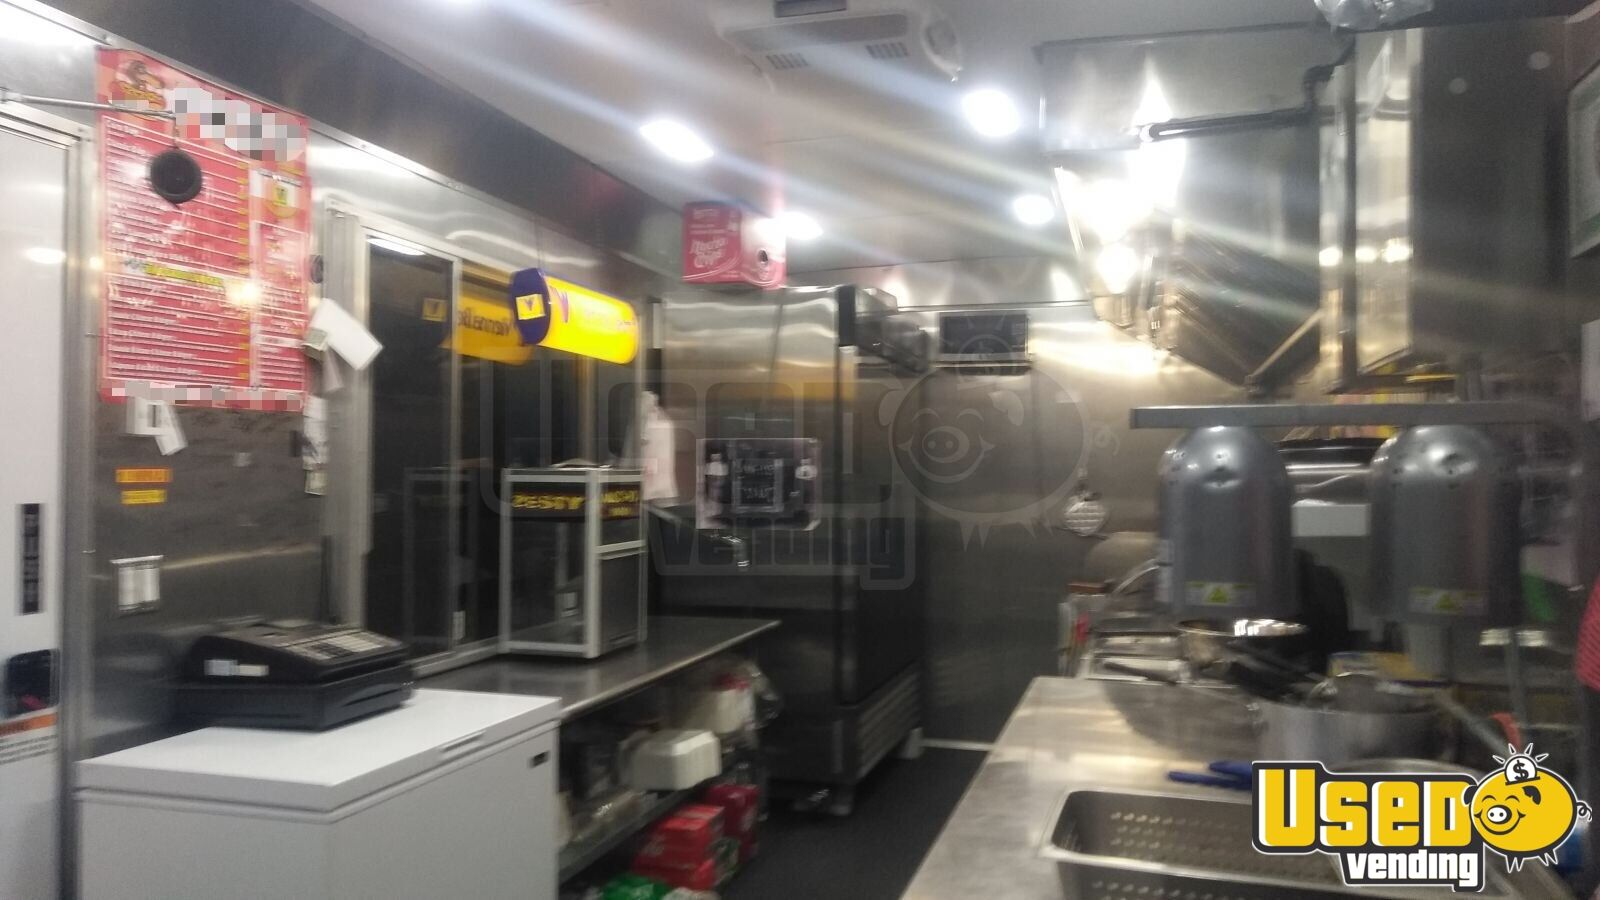 2018 Food Concession Trailer Kitchen Food Trailer Insulated Walls Texas for Sale - 6